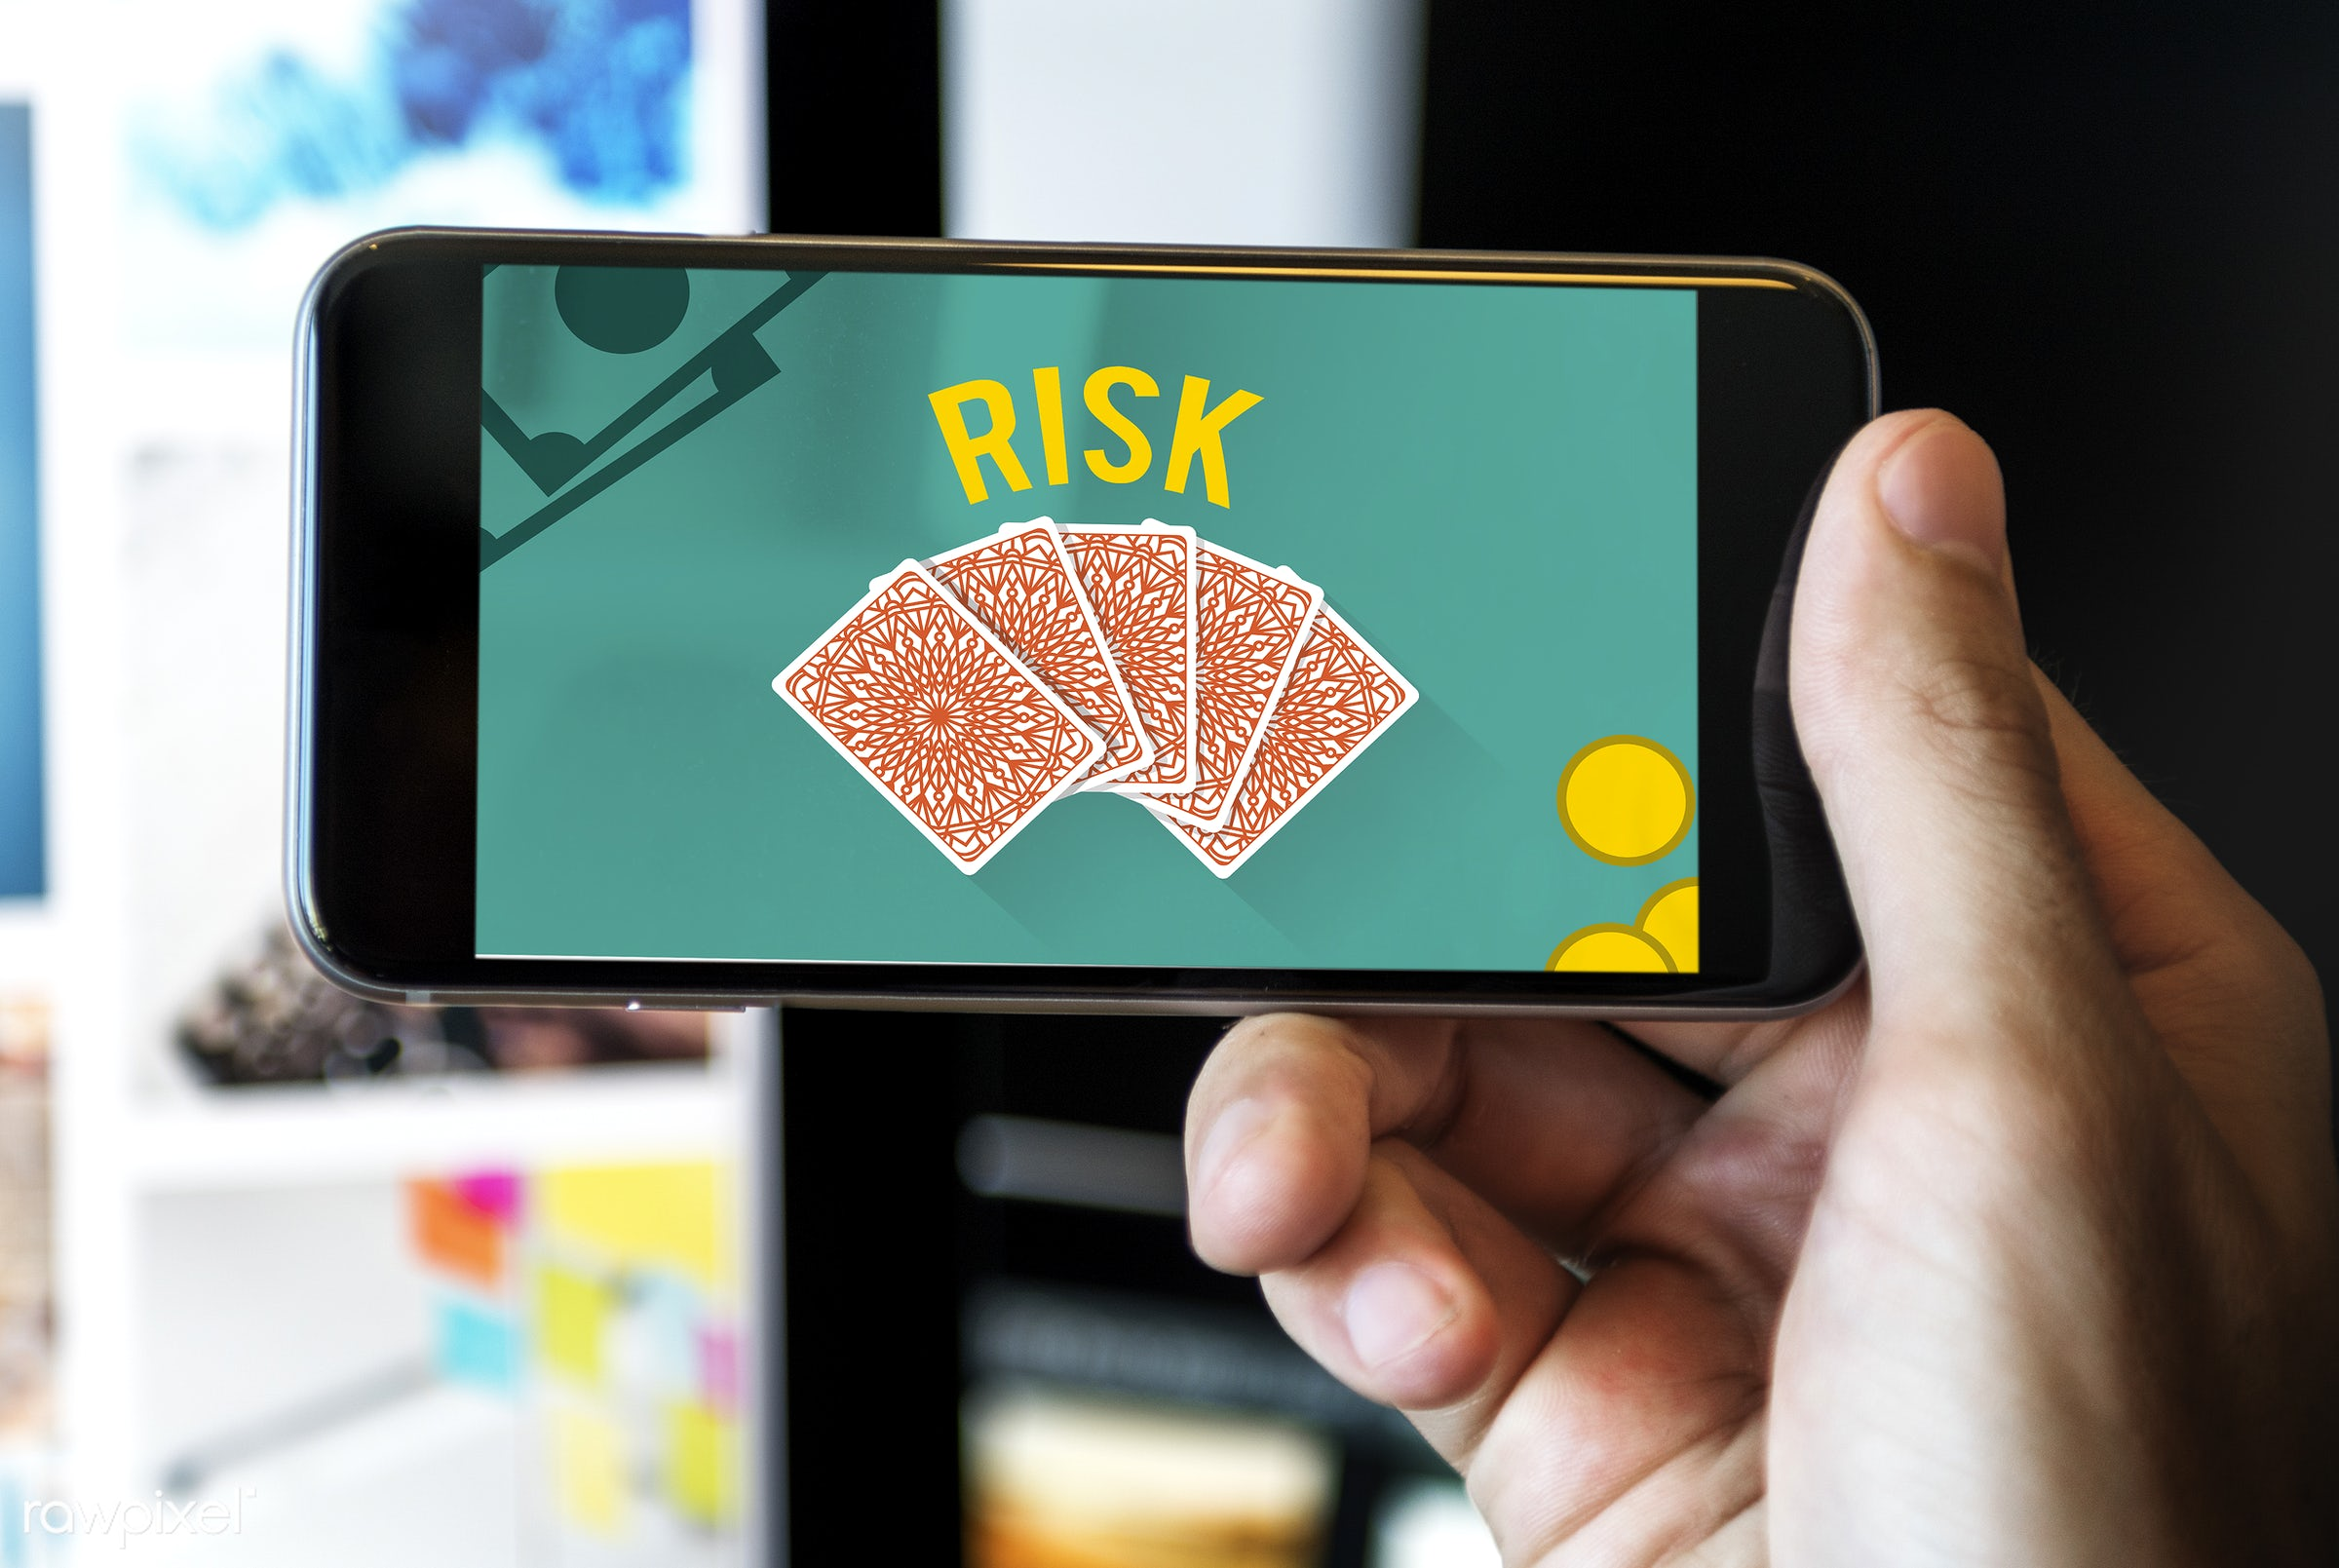 gambling, bet, blog, browsing, cards, casino, chance, communication, connect, digital device, enter to win, fortune, gamble...